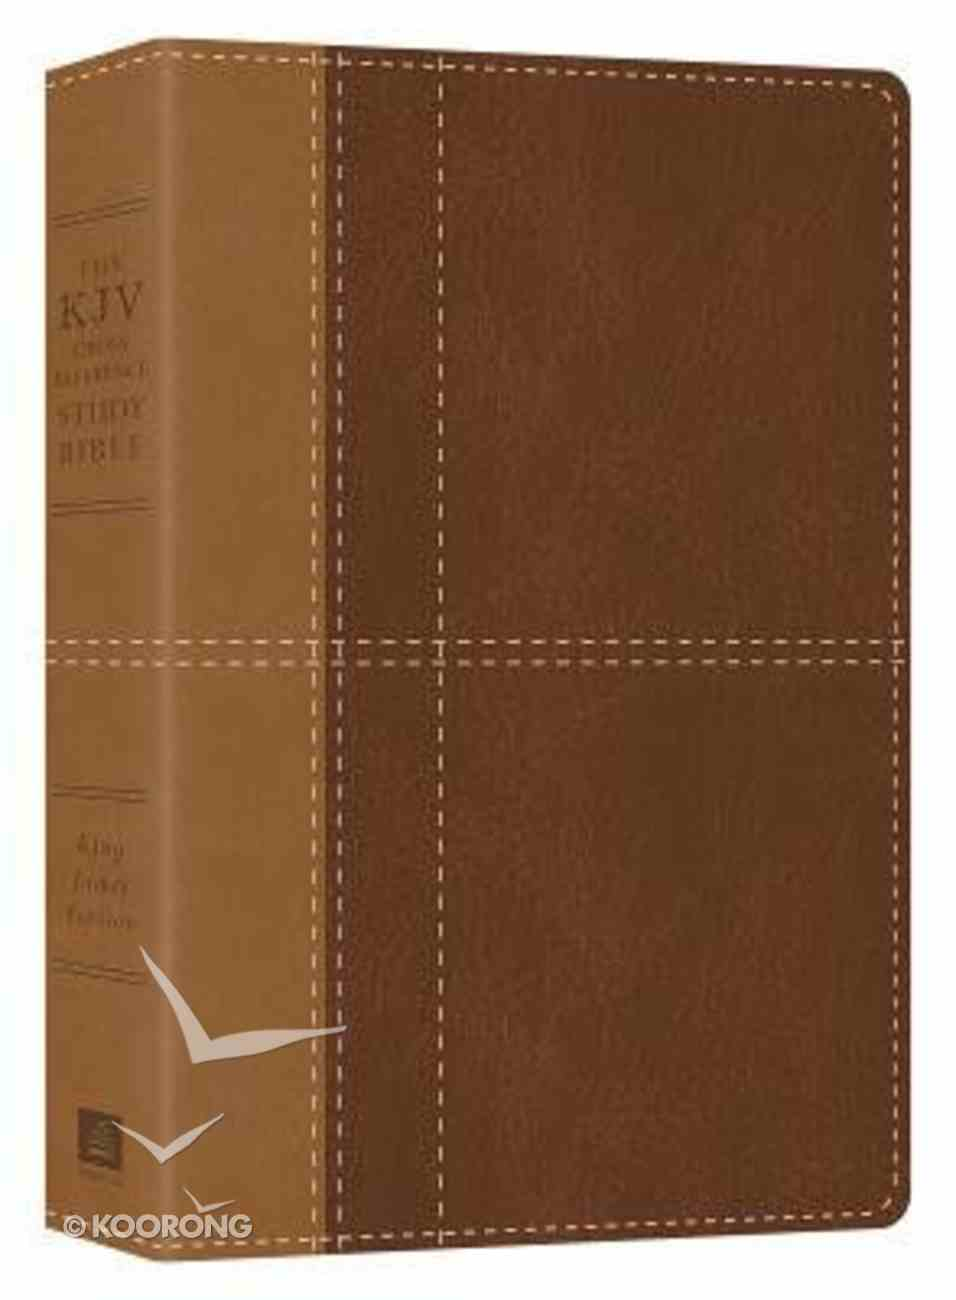 KJV Cross Reference Study Bible Indexed Brown Paperback